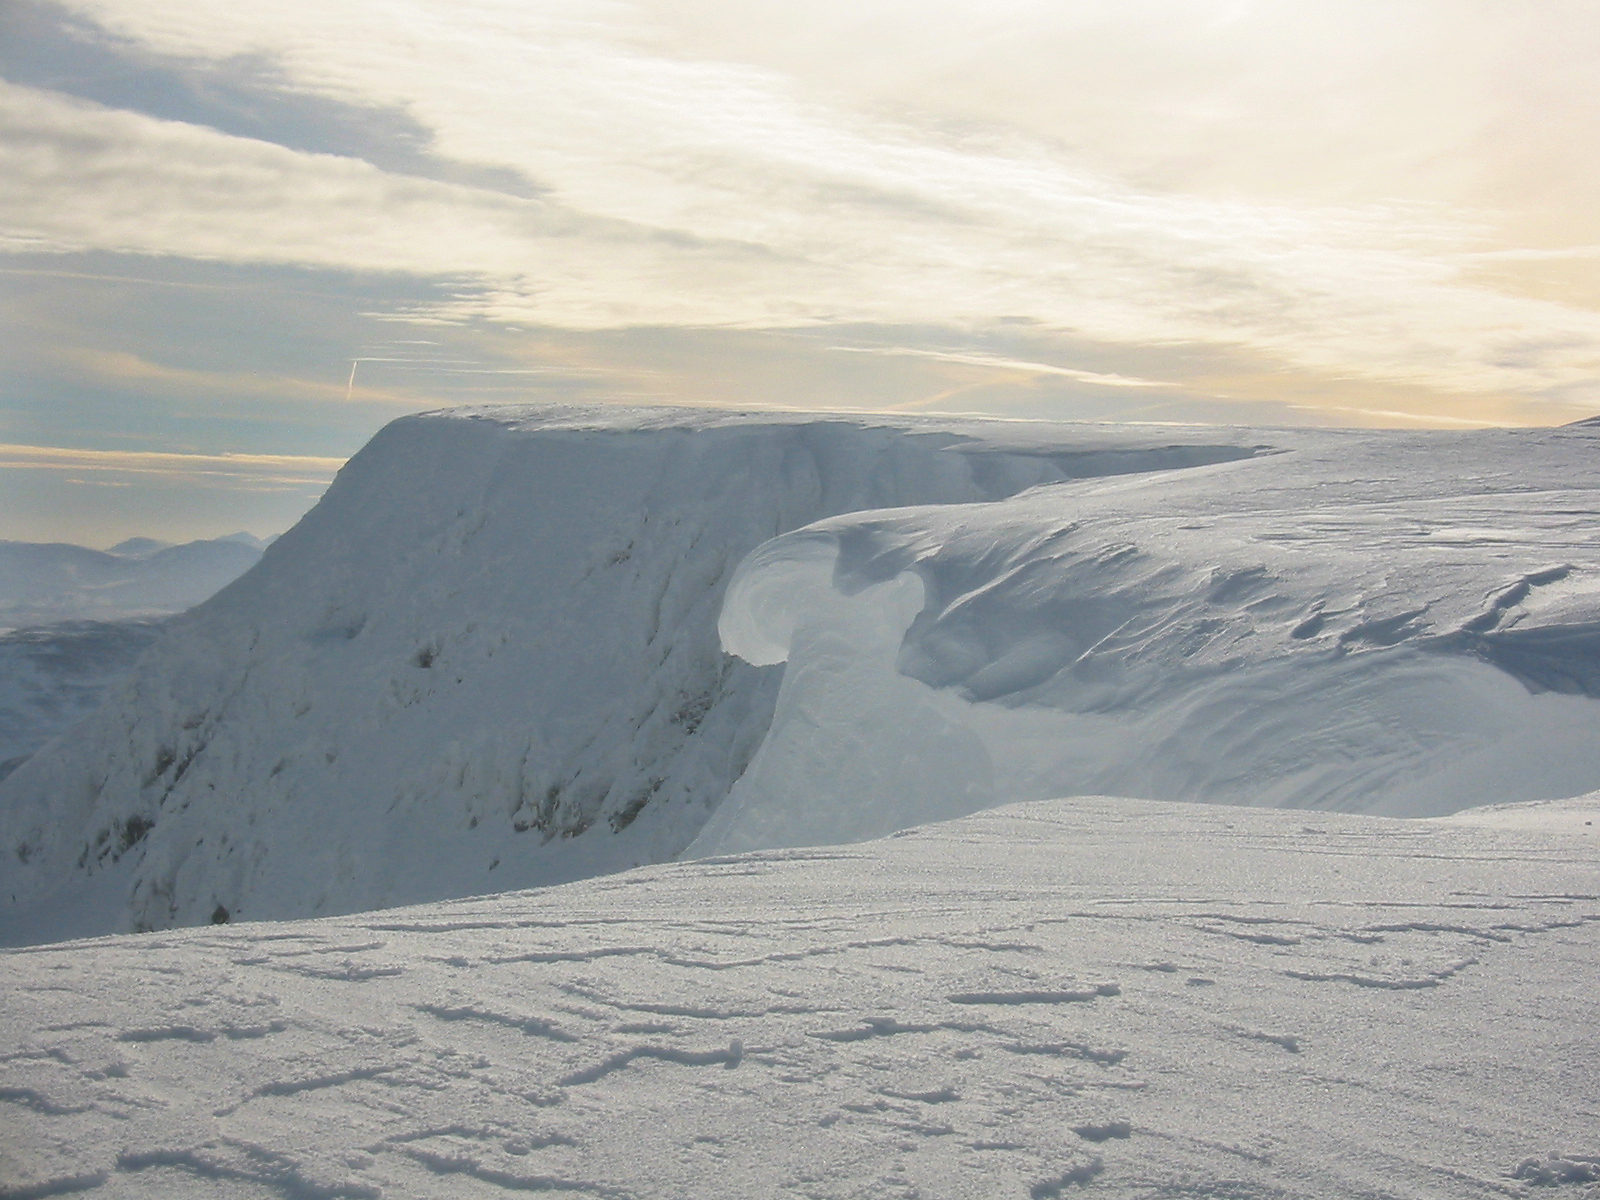 Cornices, such as this one on Aonach Mòr, are prone to sudden collapse